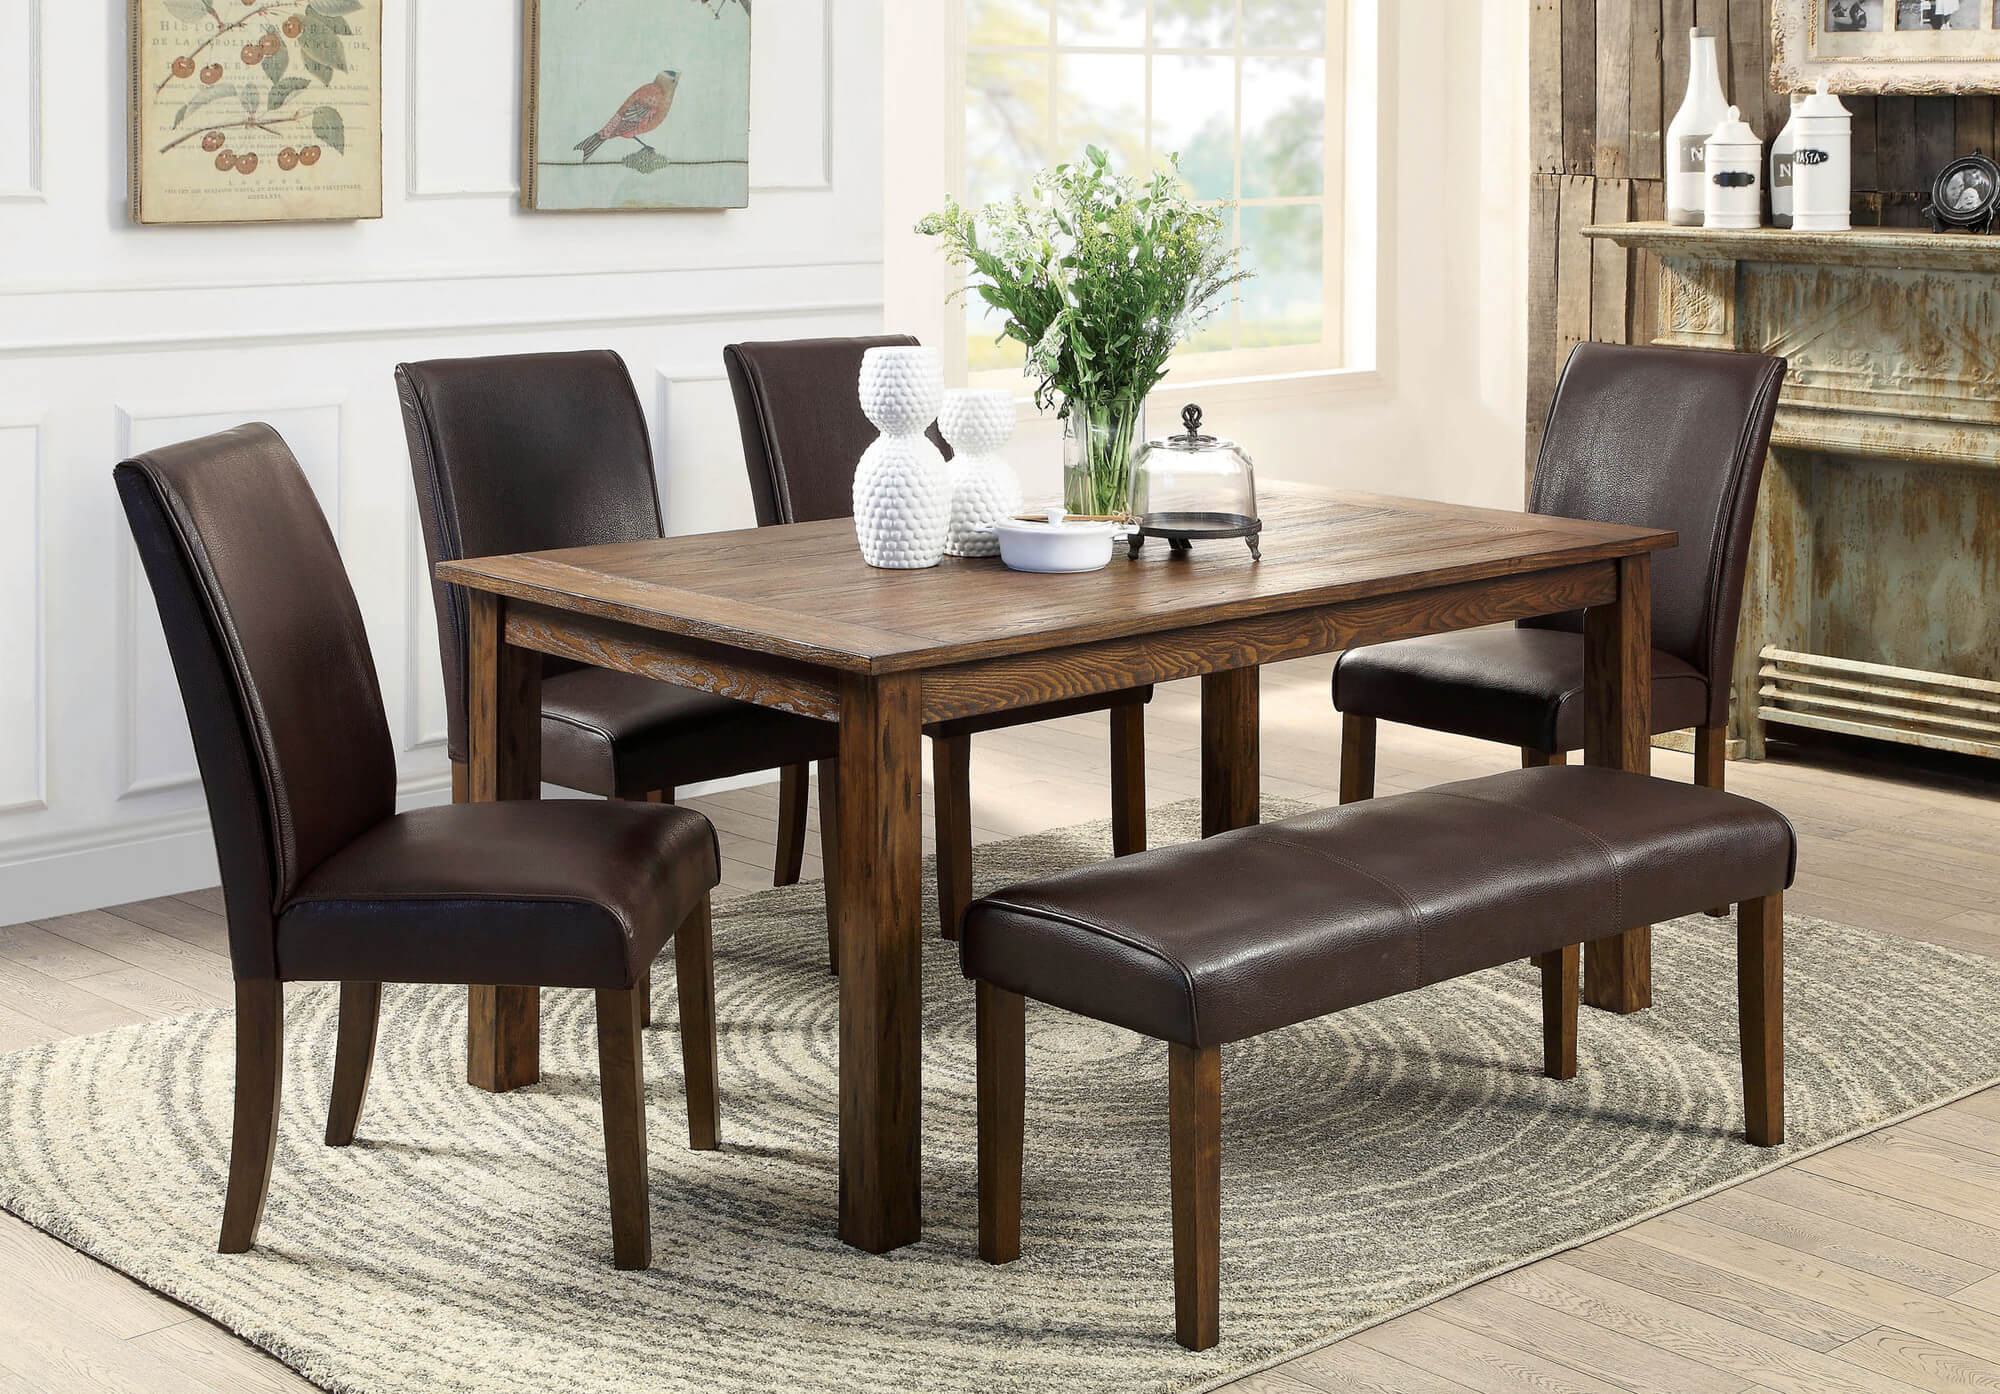 Room dining room groups mestler bisque rectangular dining room table - Narrow Dining Table On Alluring Living Room And Dining Room Sets